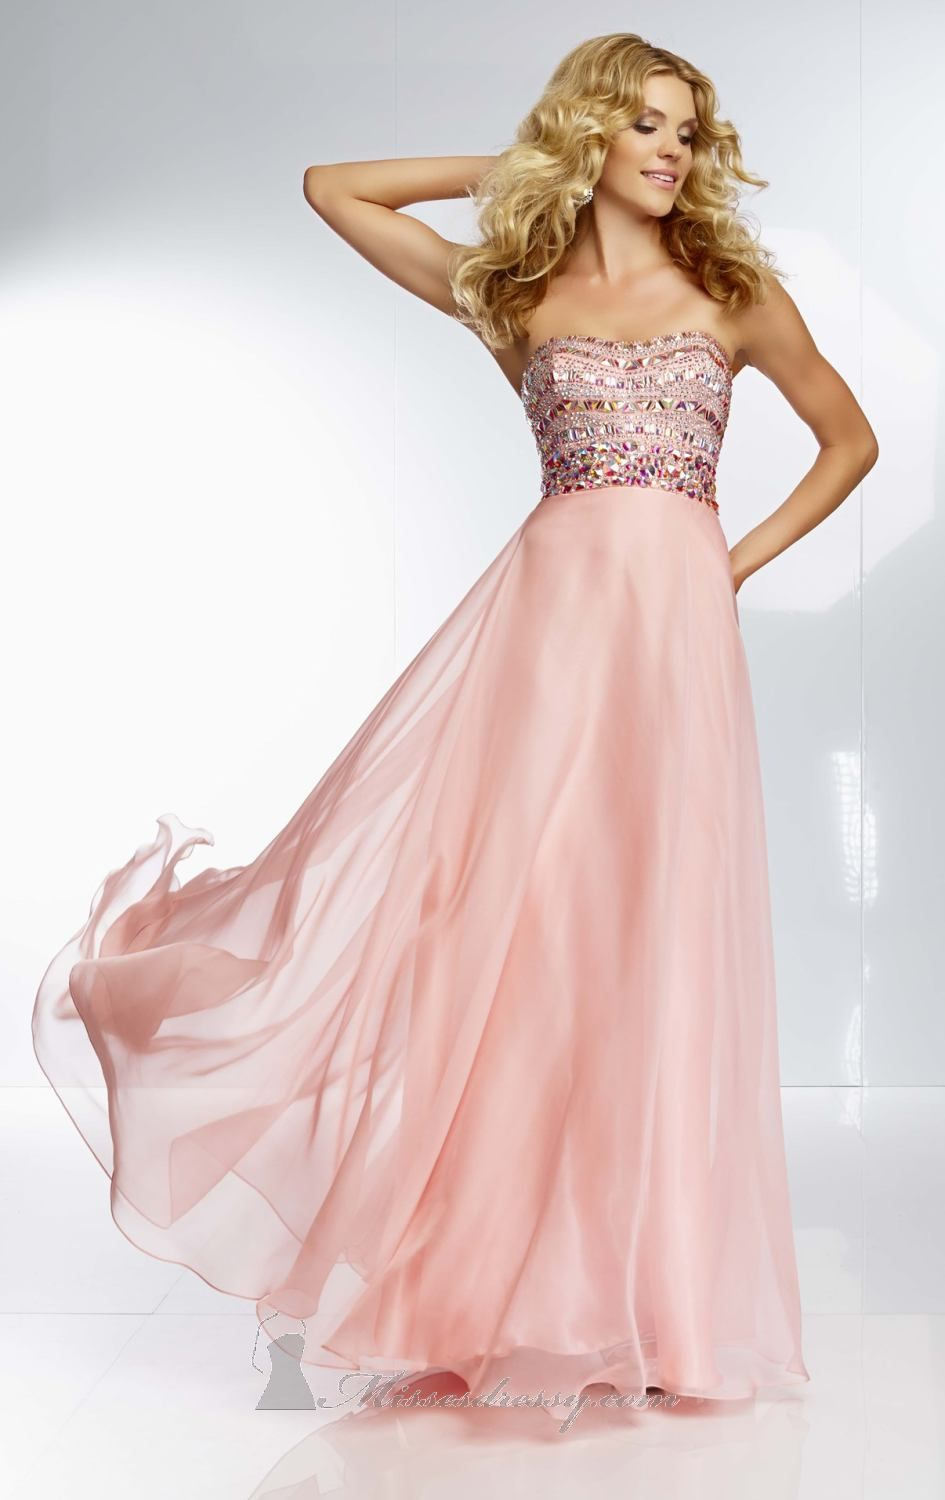 Strapless Chiffon Gown by Paparazzi by Mori Lee | Pinterest